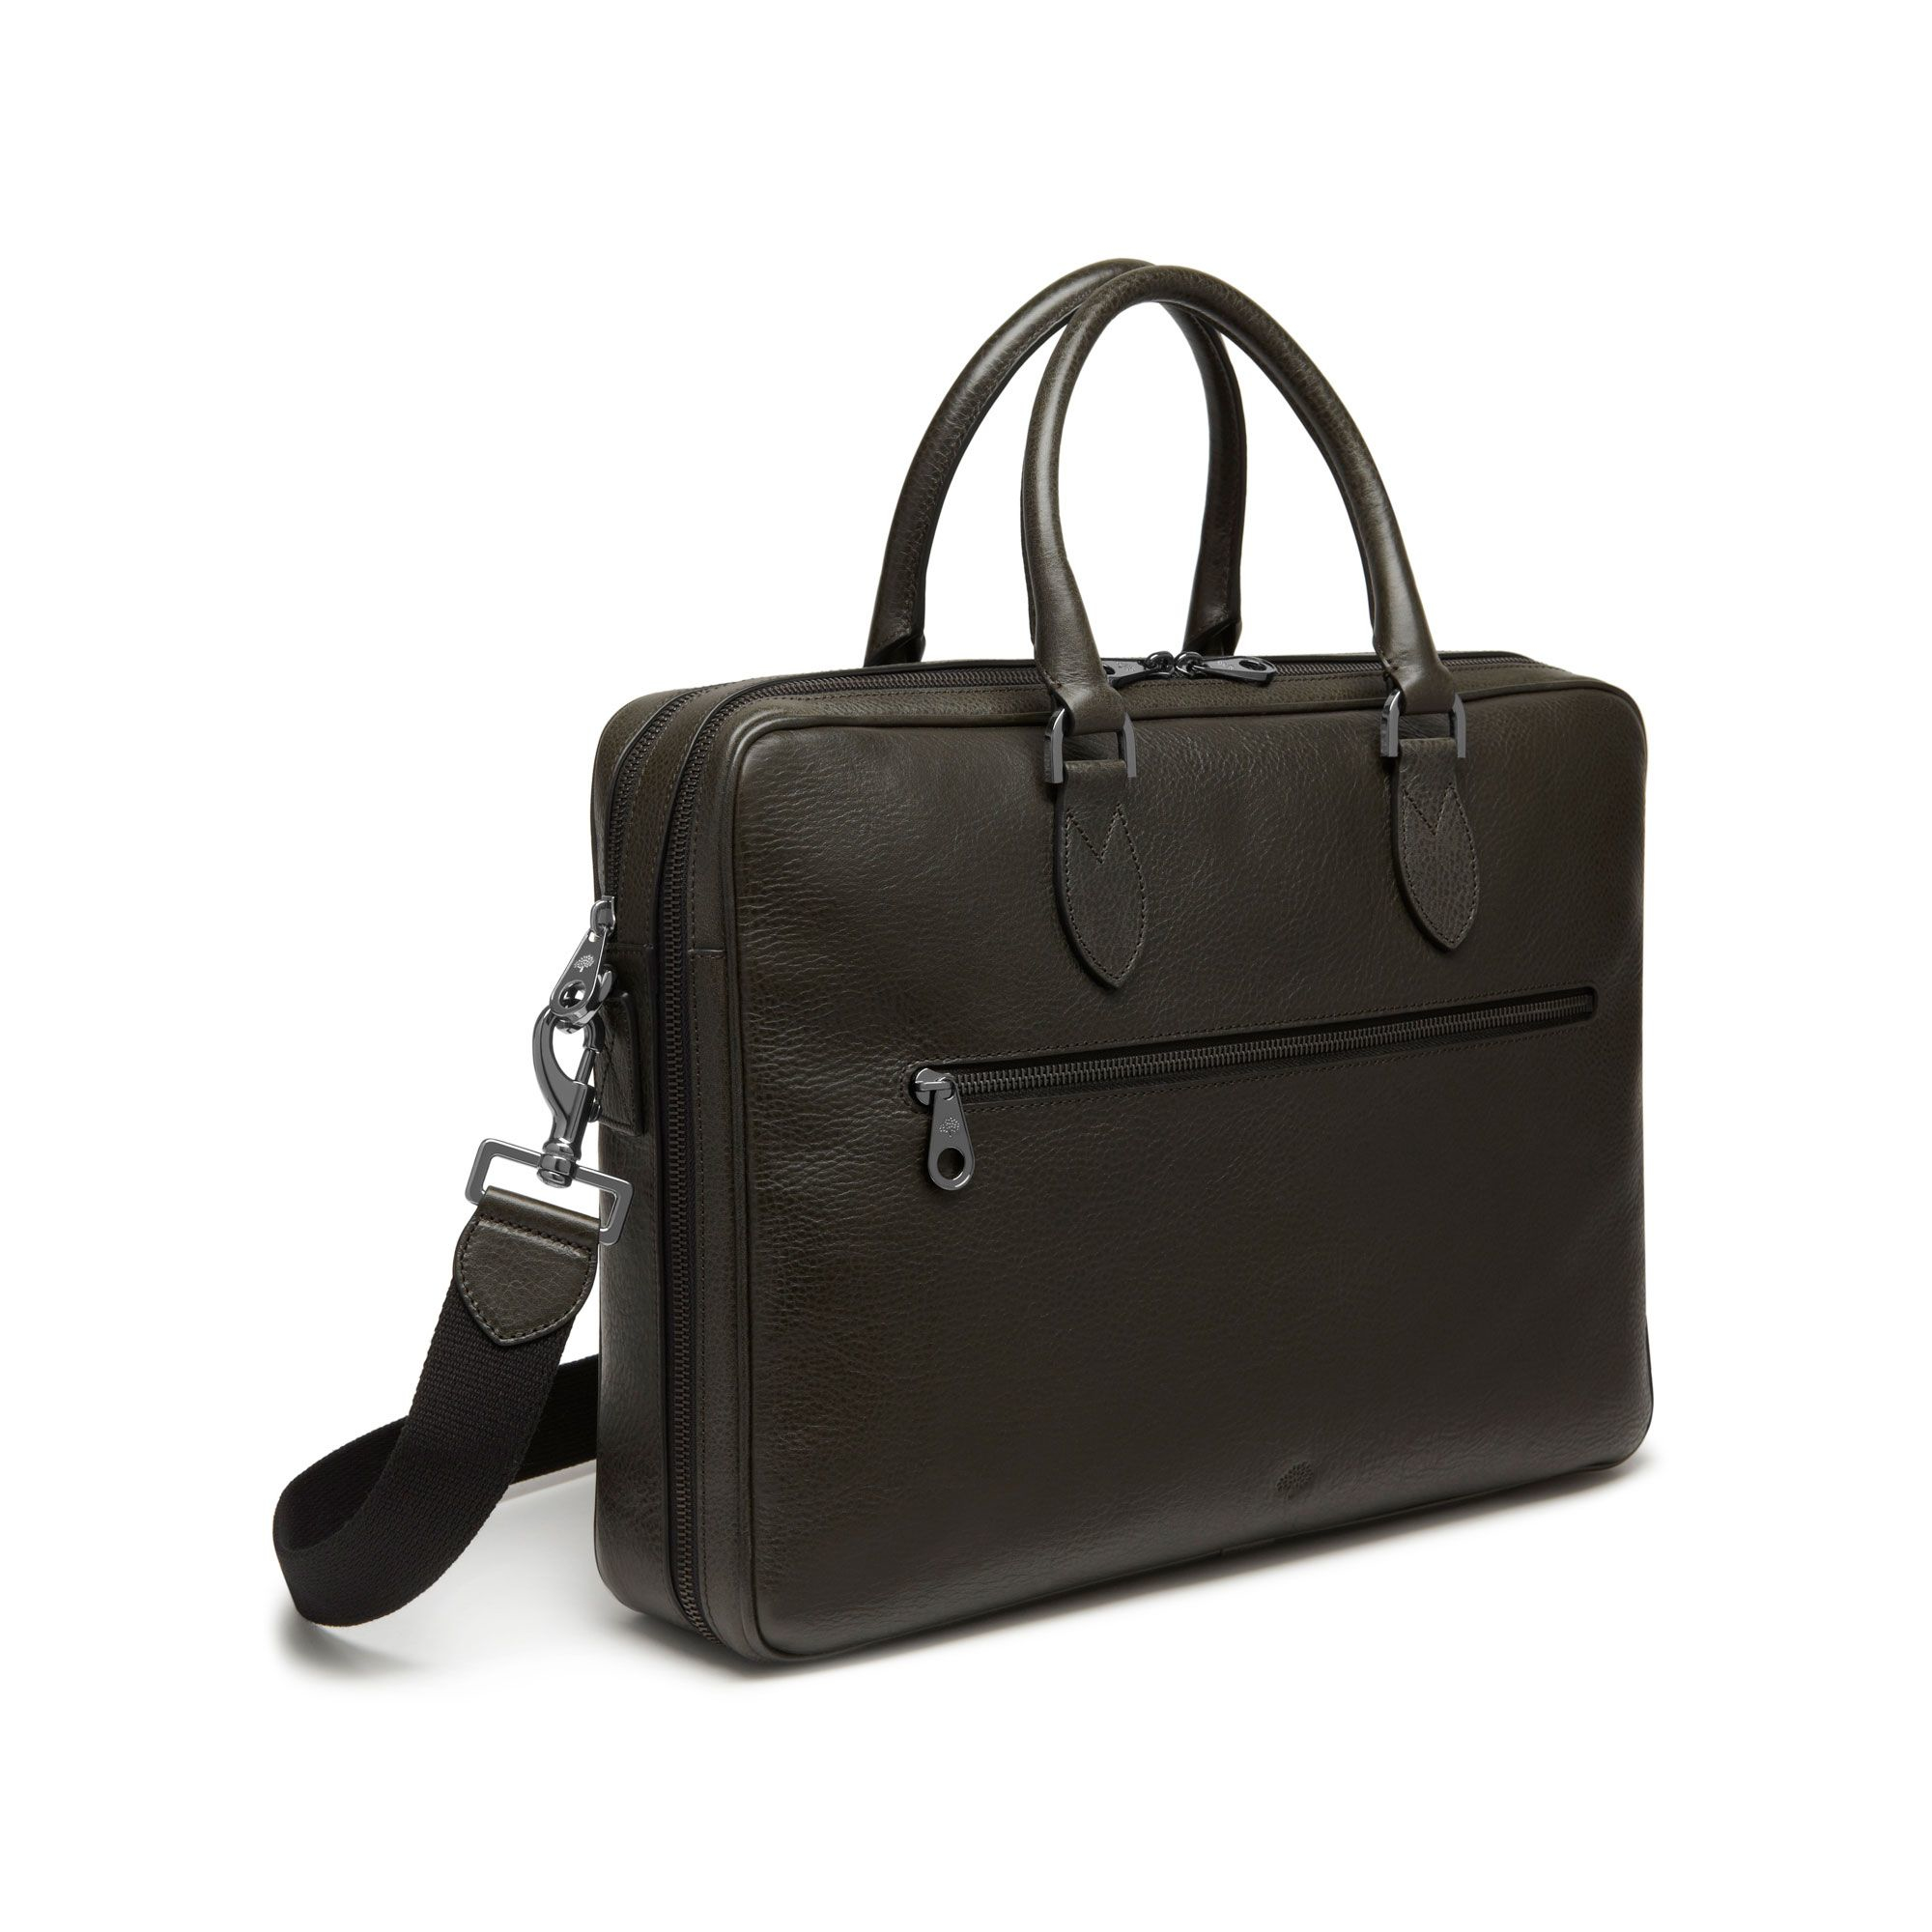 Lyst - Mulberry Heathcliffe In Green For Men